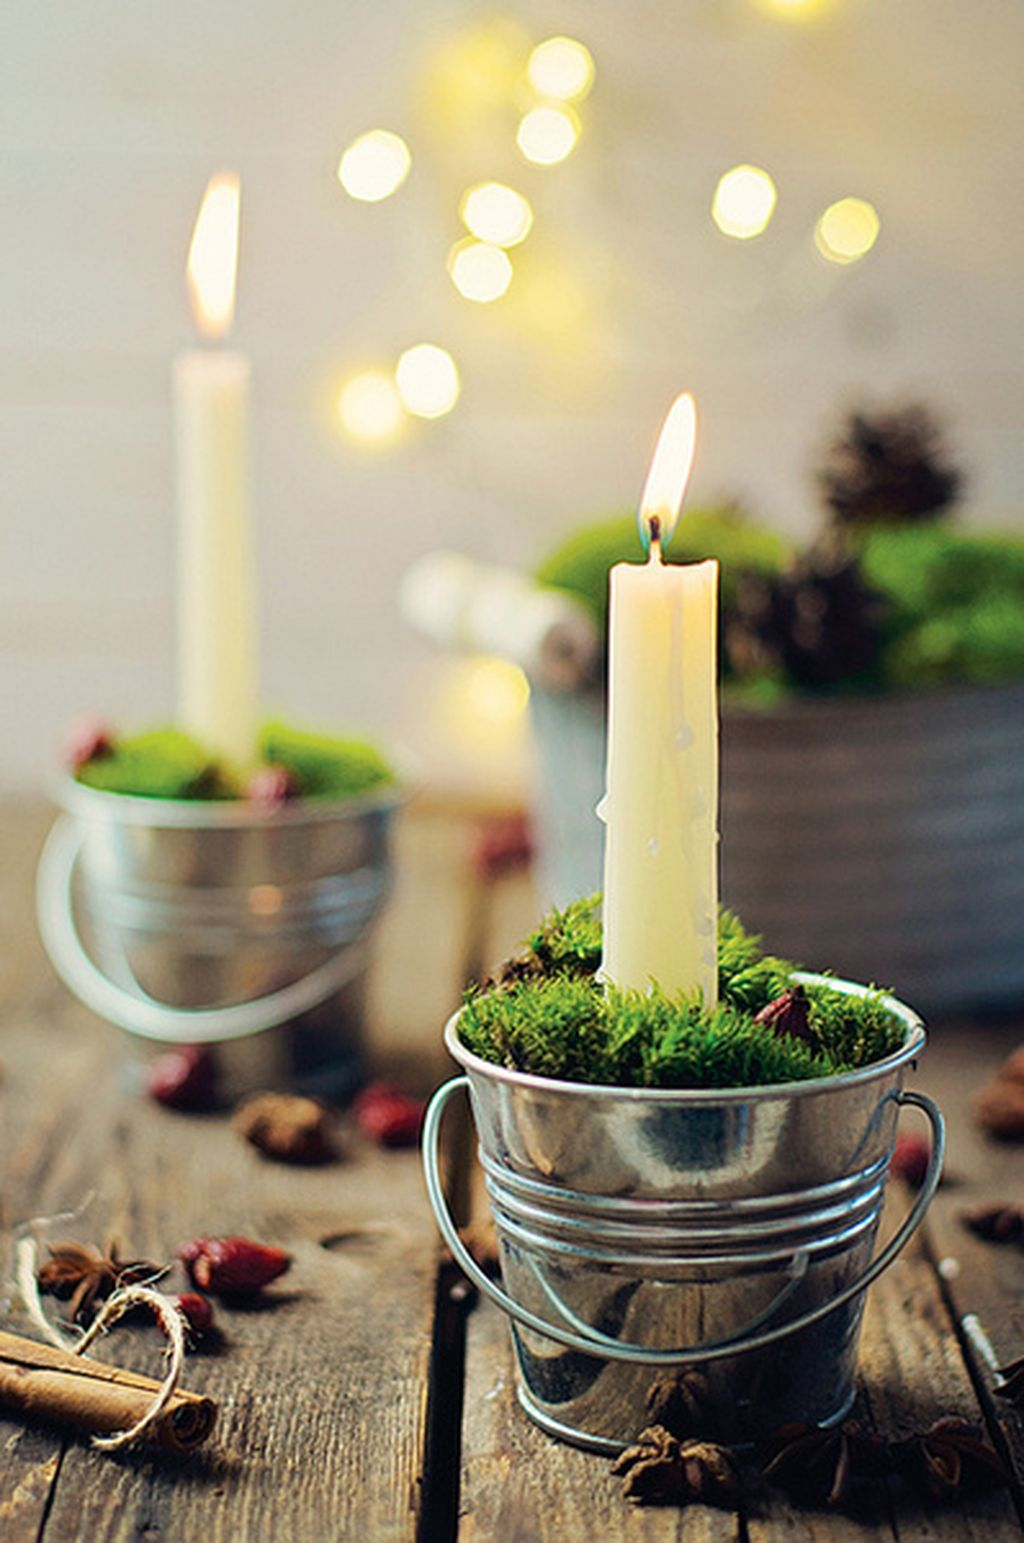 Inspiring Modern Rustic Christmas Centerpieces Ideas With Candles 09